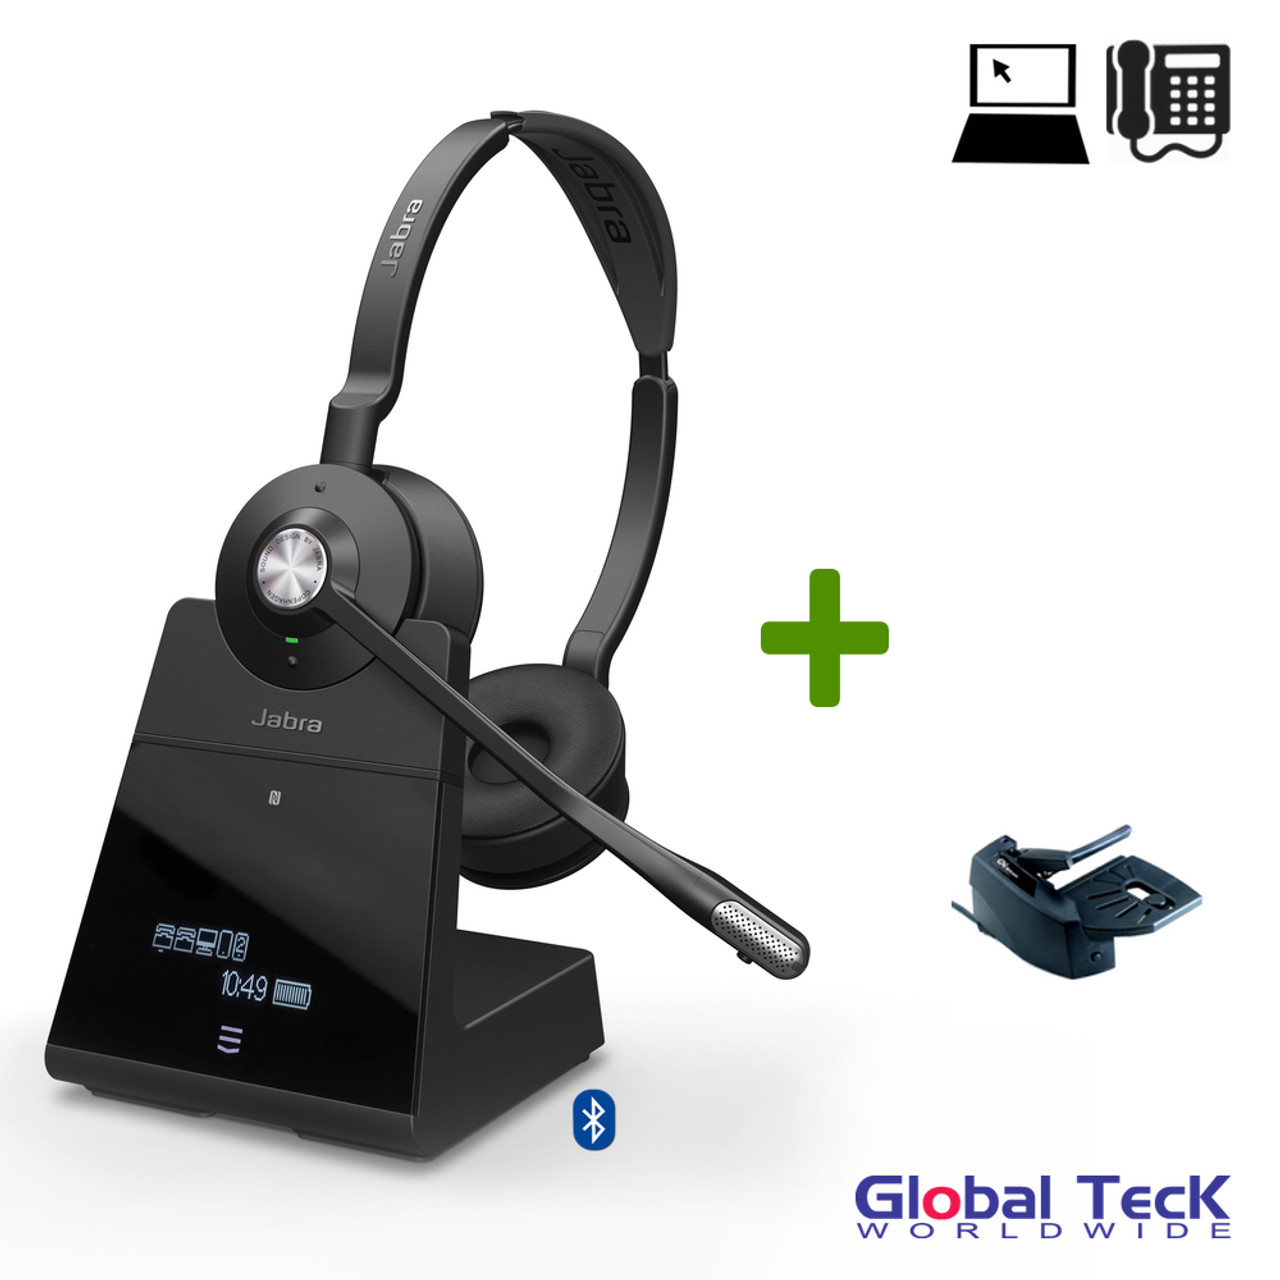 Jabra Engage 75 Wireless Stereo Headset Bundle 9559 583 125 B Bluetooth Pc Deskphone Mobile Usb Nfc Dect Skype Certified Lifter Included Integrated Busy Light Connect 5 Devices